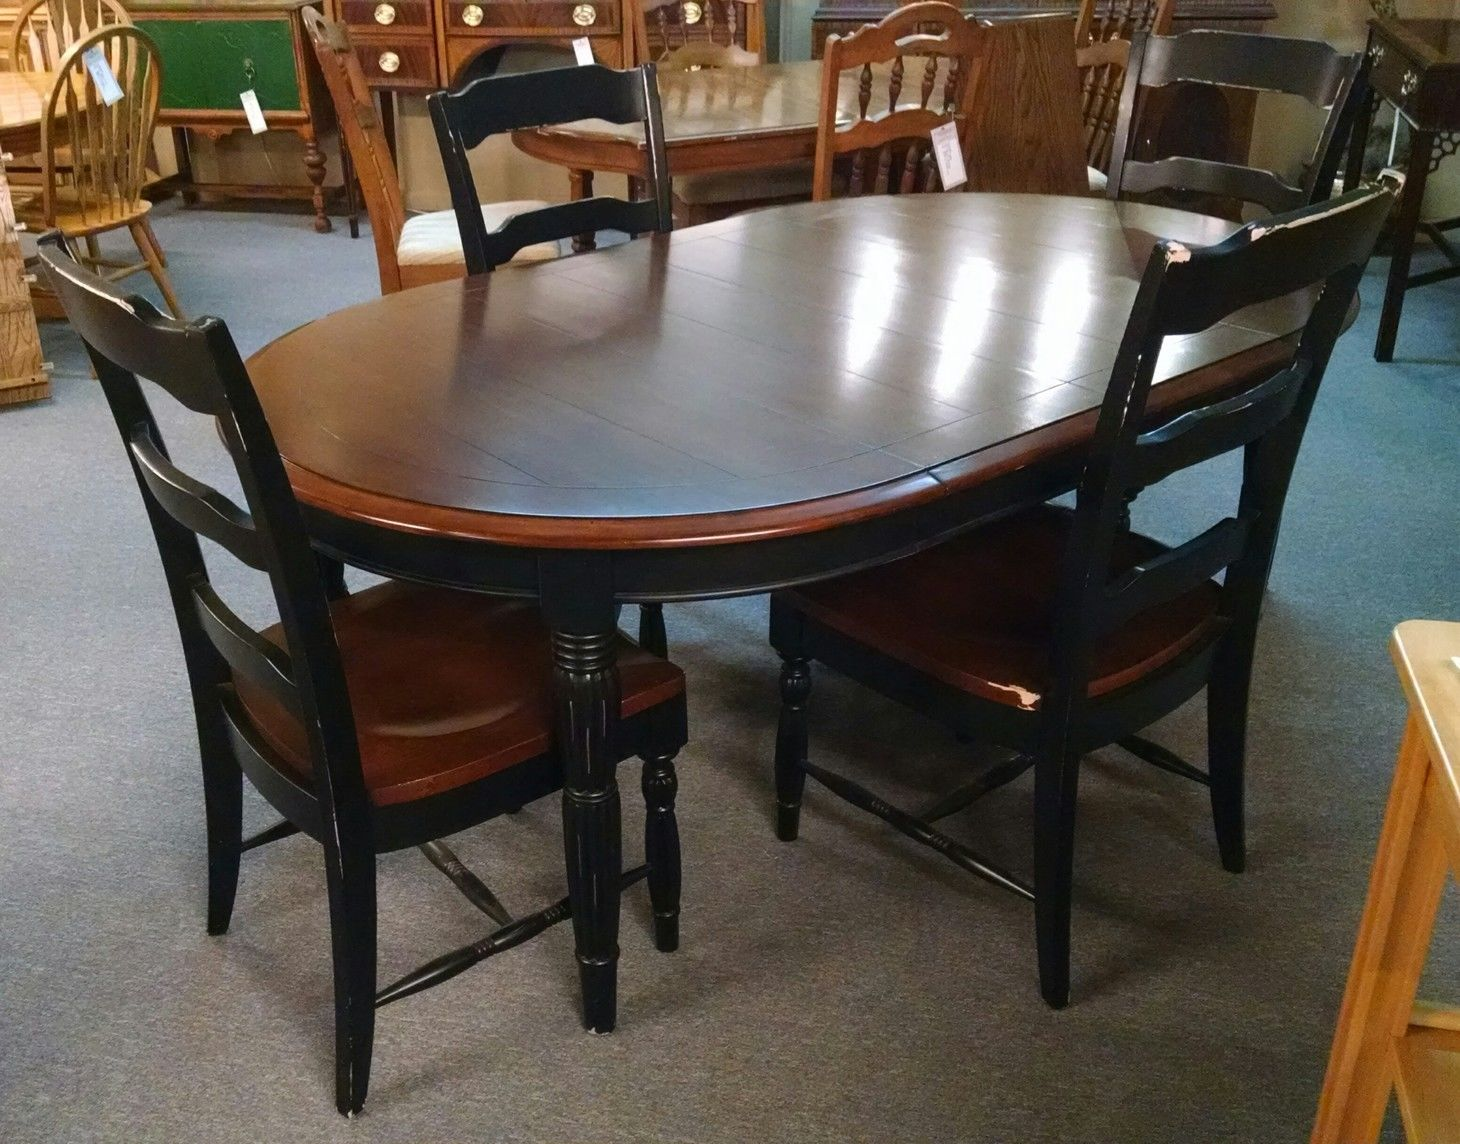 BASSETT DINING TABLE 4 CHAIRS Delmarva Furniture Consignment